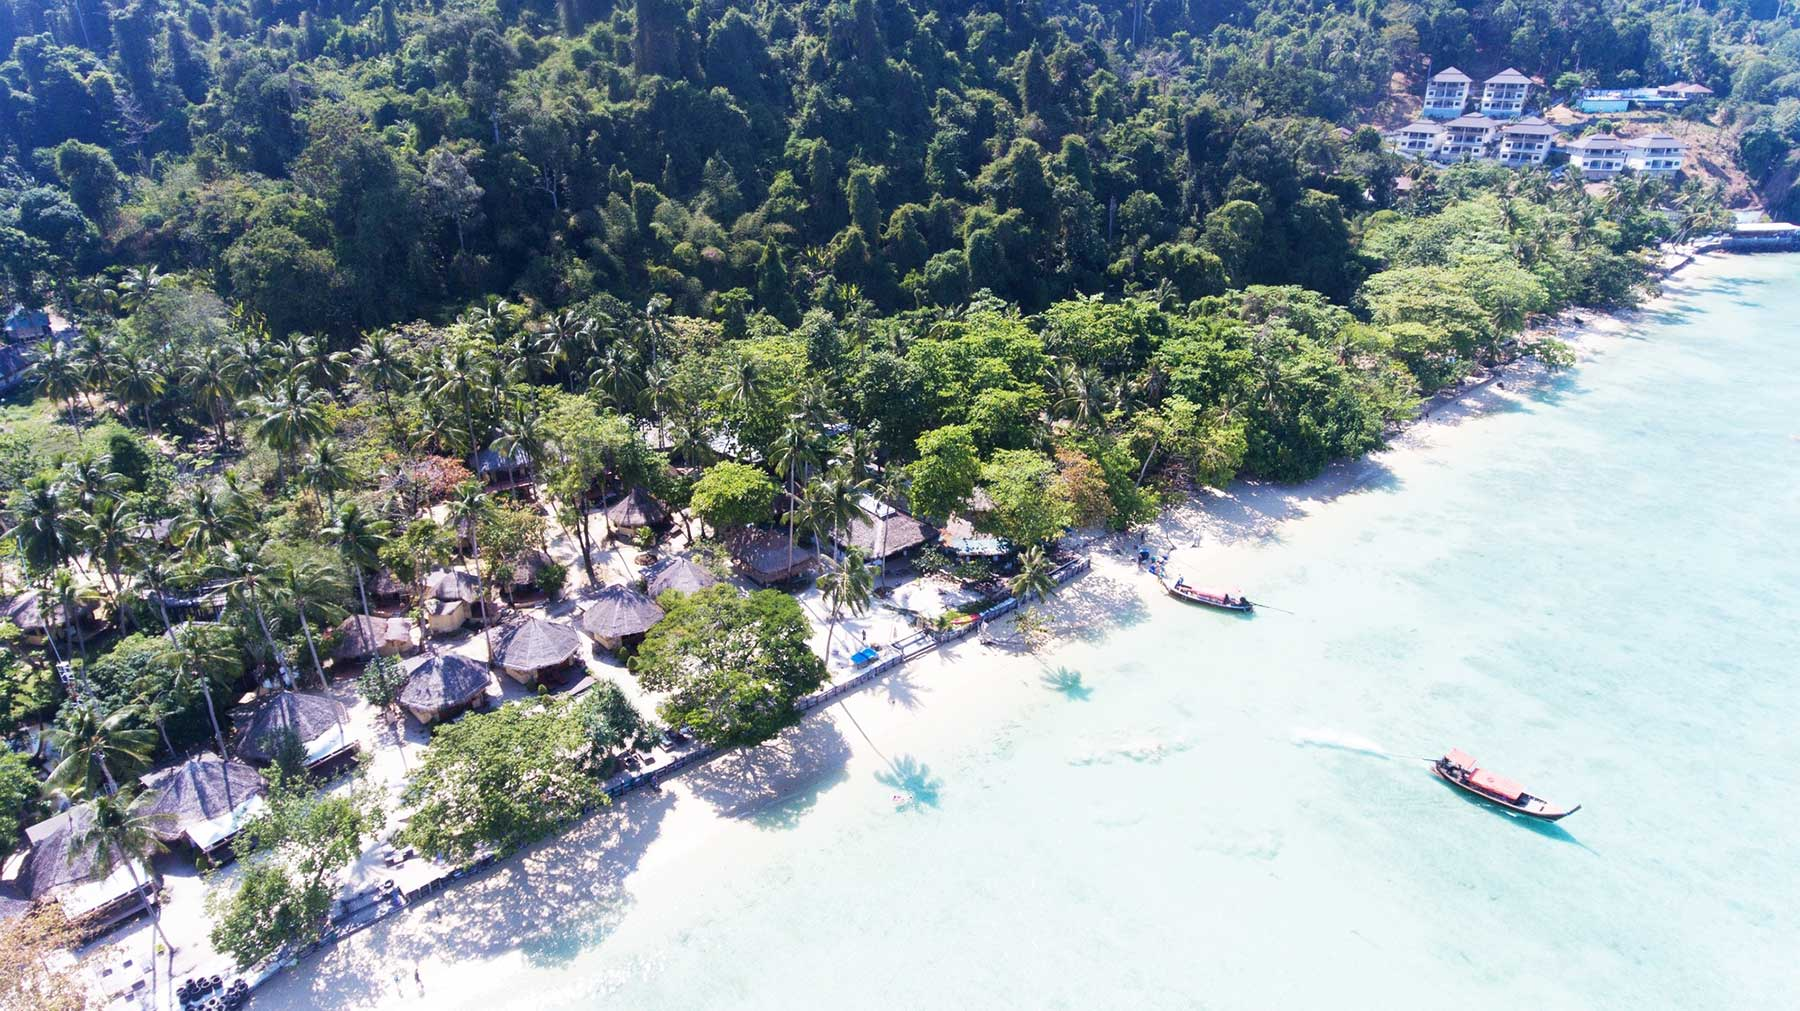 Koh Ngai tourist destination, Thapwarin Resor